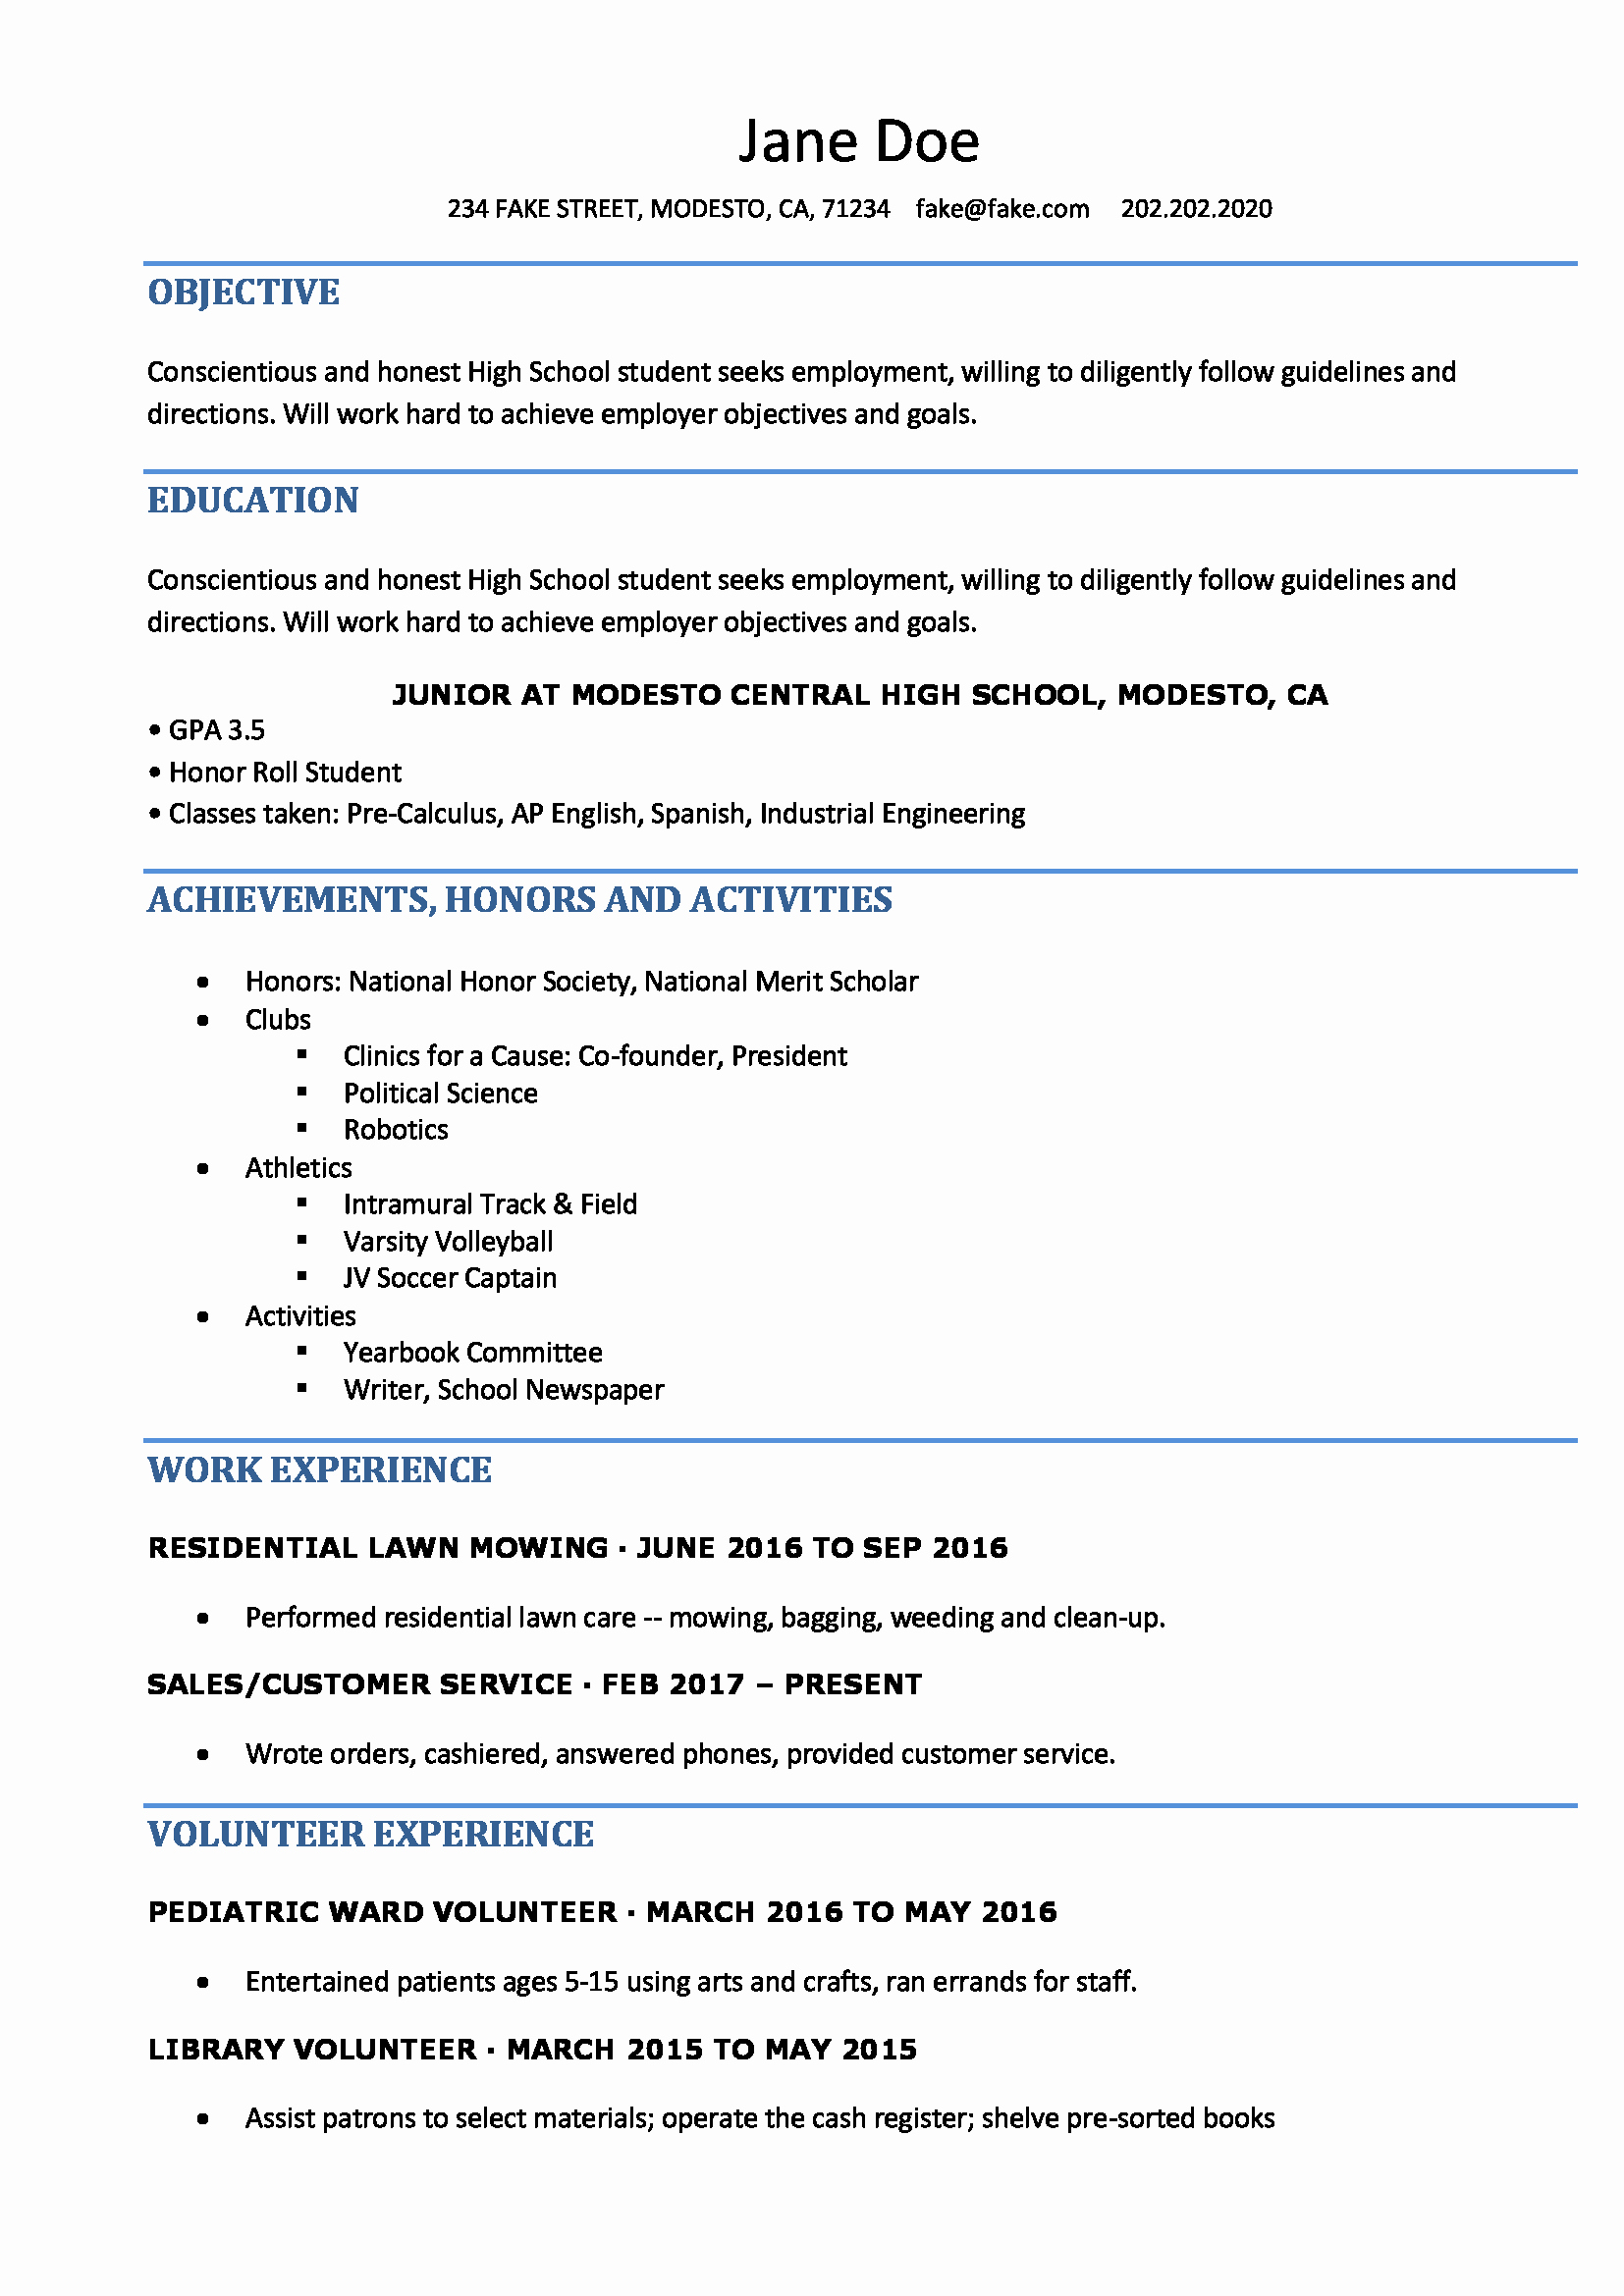 Resume Templates for College Students Awesome High School Resume Resumes Perfect for High School Students